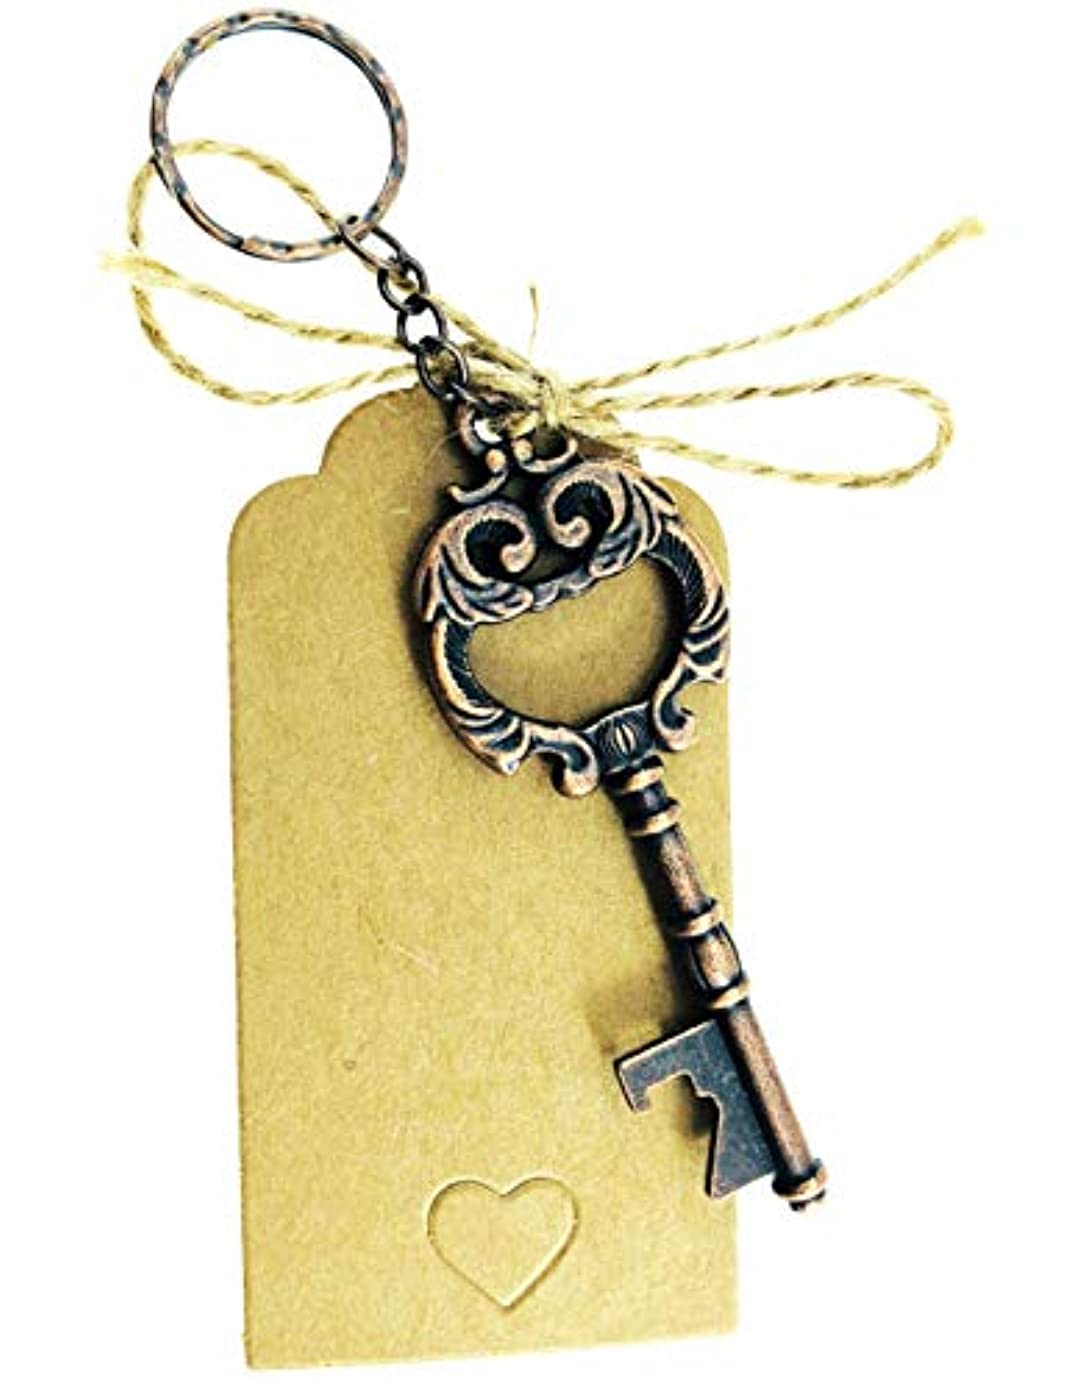 50 PCS Vintage Skeleton Key Bottle Opener with Keychain,Skeleton Key Bottle Openers Wedding Favors Baby Shower,Bridal Shower Rustic Decoration with Kraft Paper Card and Twine (Antique Copper)